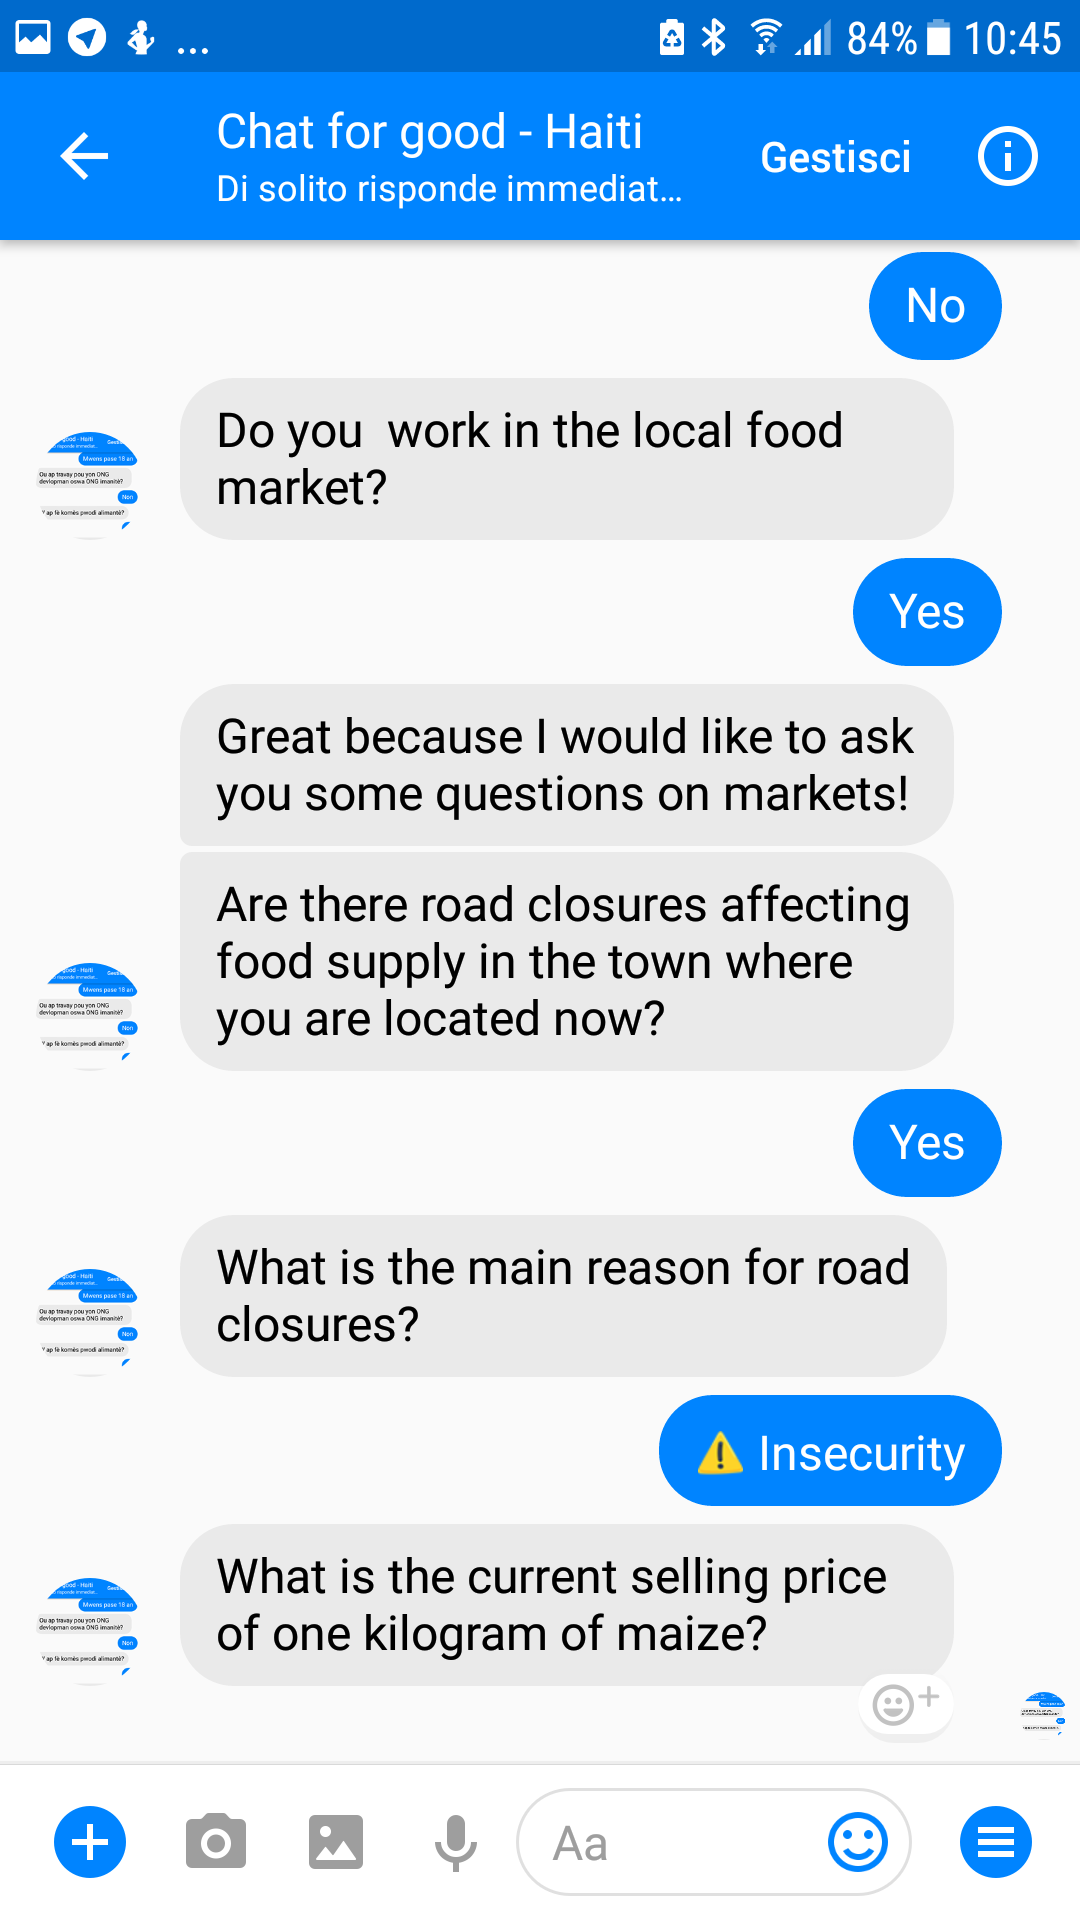 Our experiment using Facebook chatbots to improve